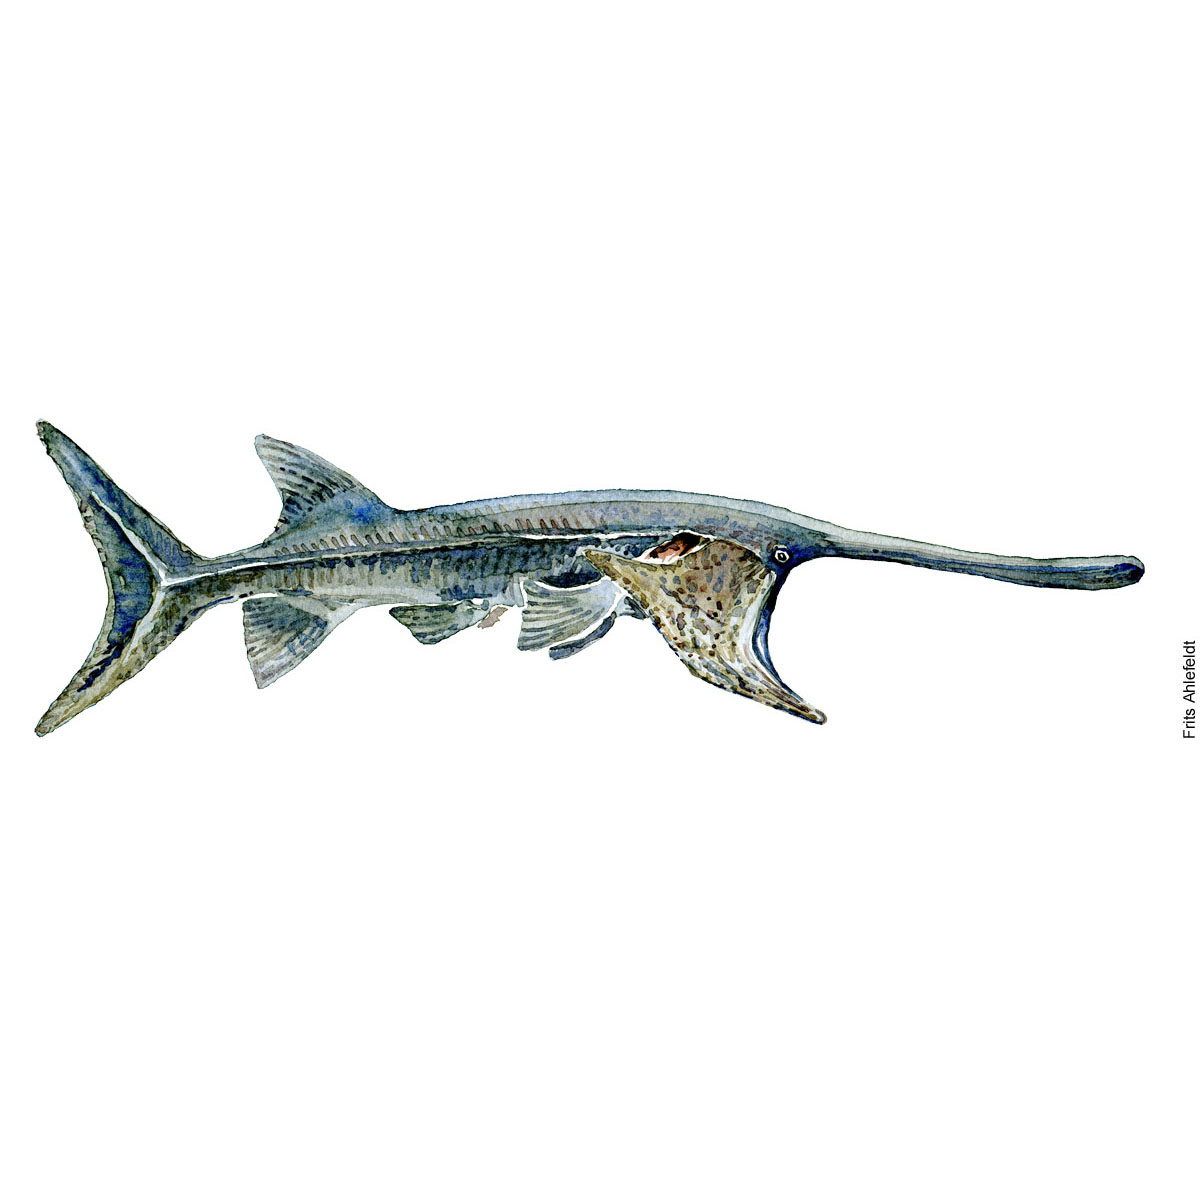 Chinese paddlefish - Fish watercolor painting by Frits Ahlefeldt